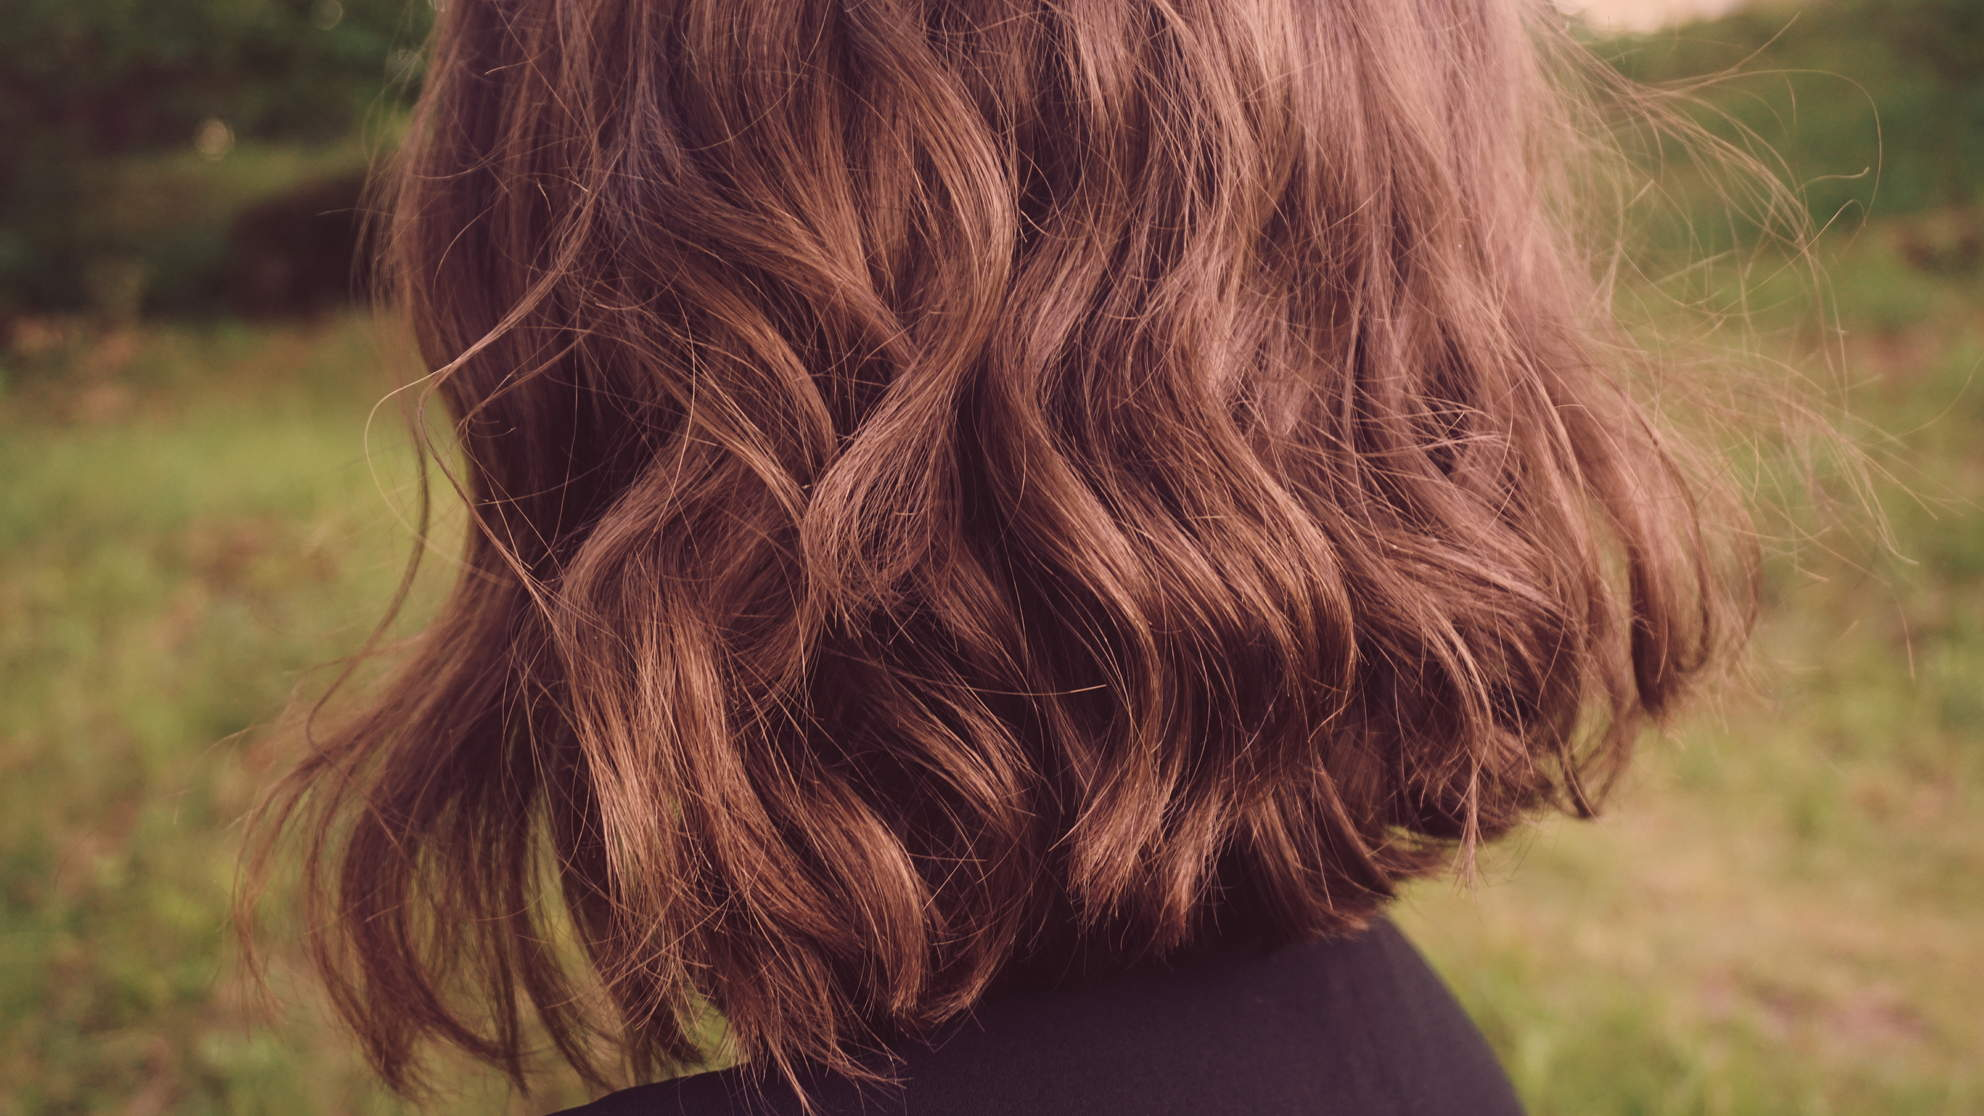 This Hairspray Adds So Much Volume to My Hair That It's a Total Game-Changer